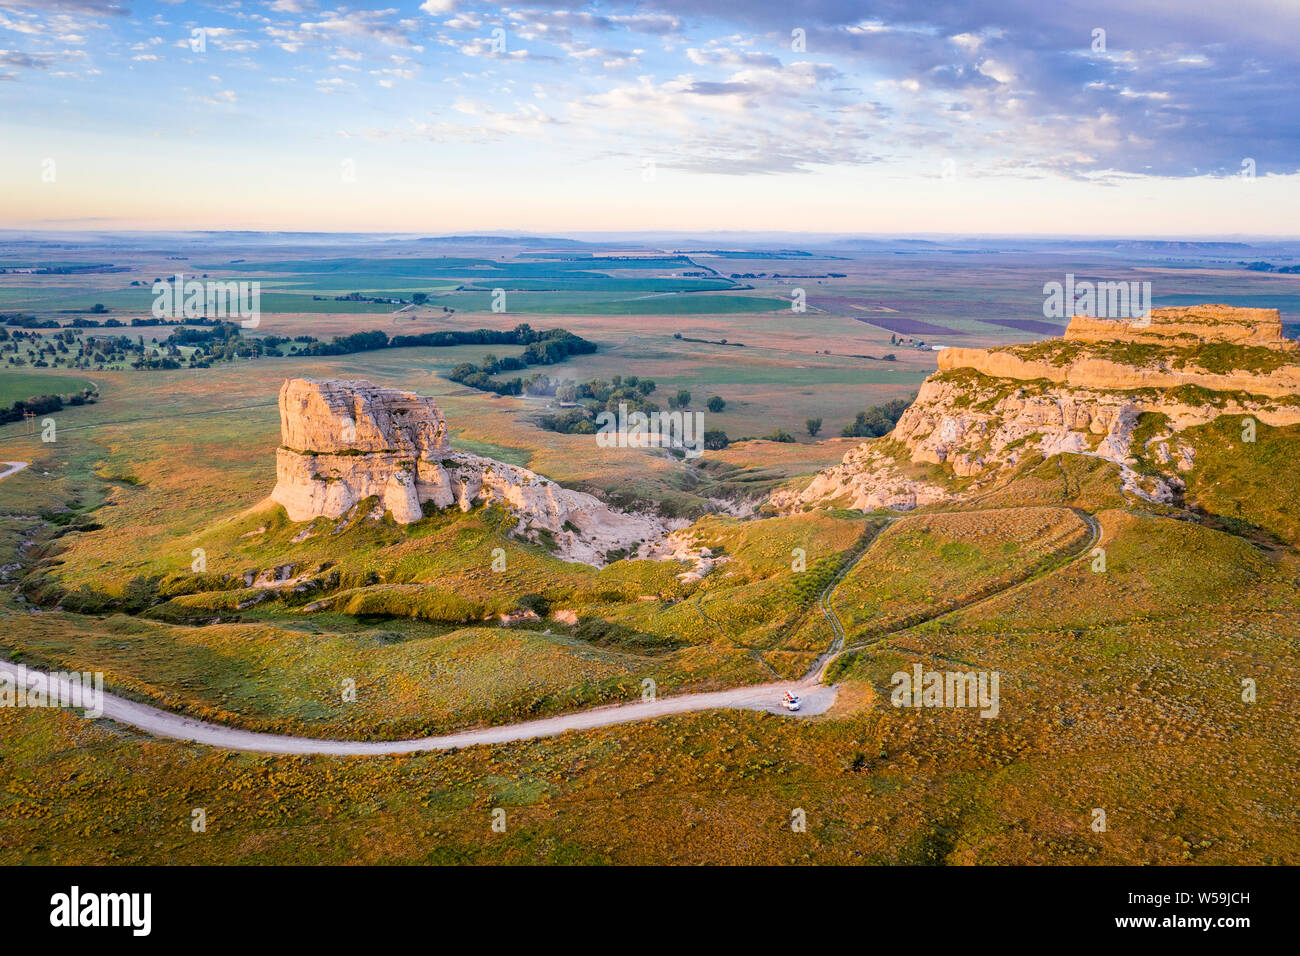 Courthouse and Jail Rocks in Nebraska Panhandle - aerial view ar summer sunrise Stock Photo